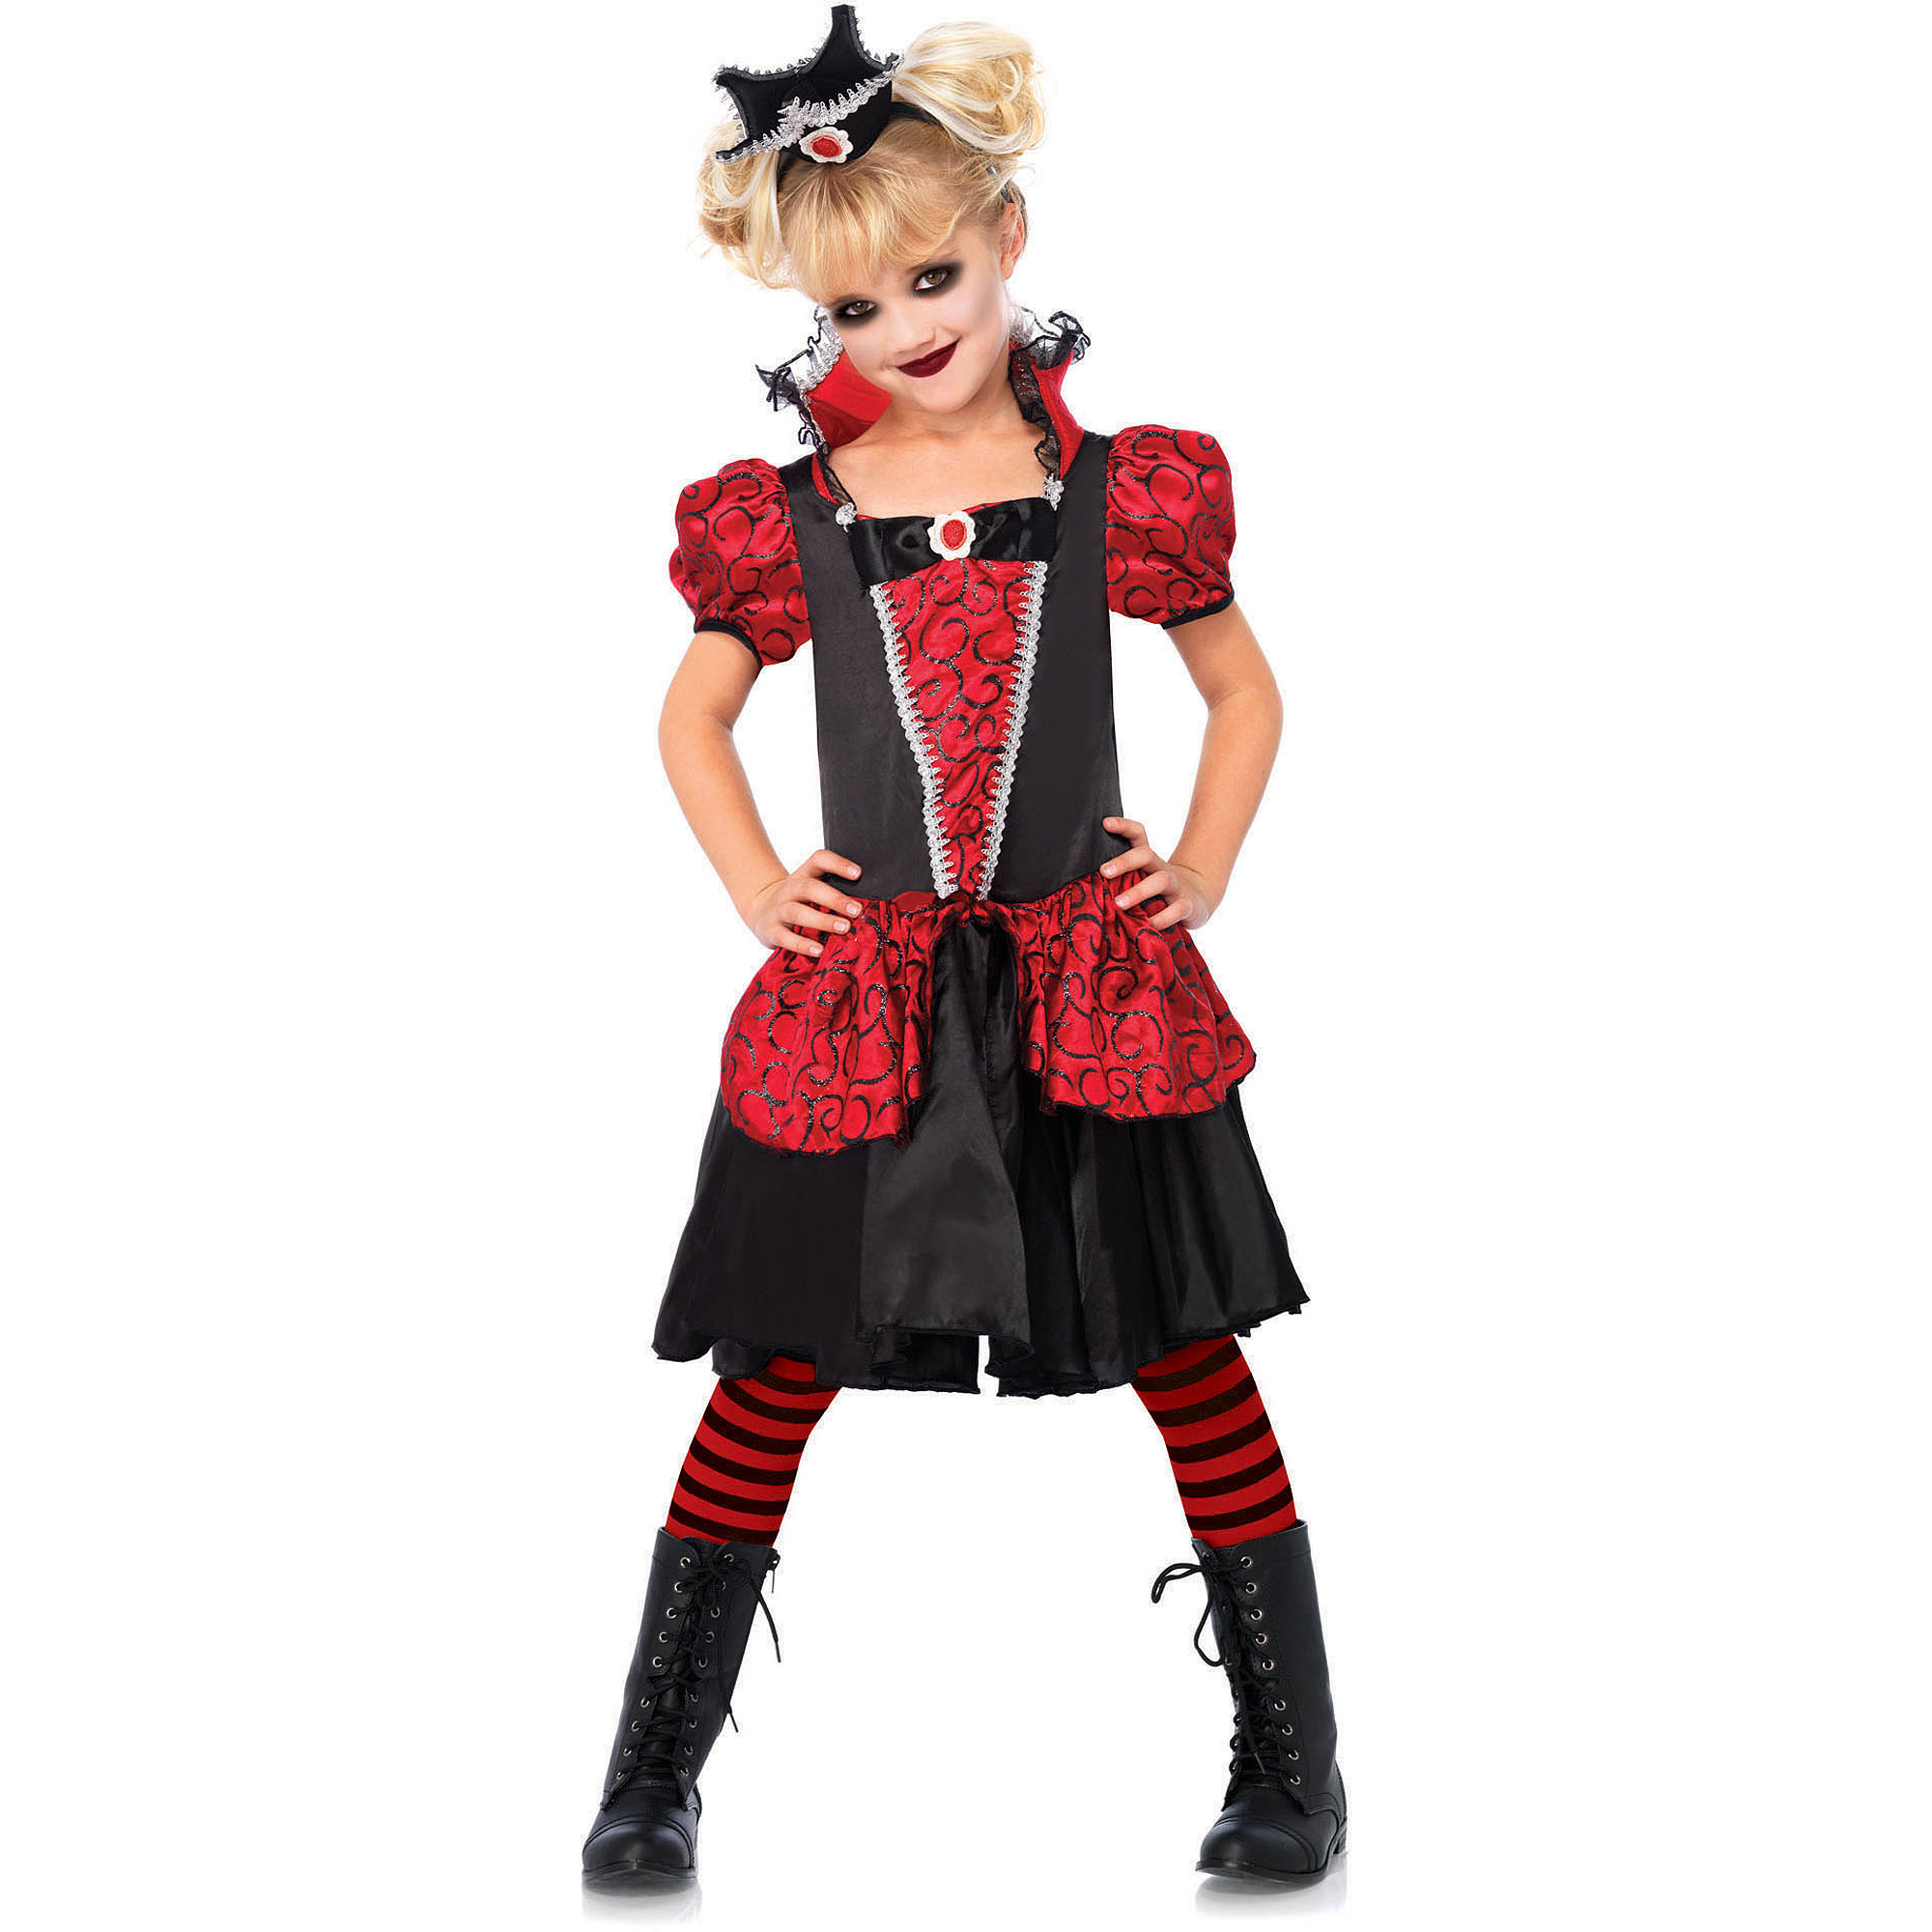 Leg Avenue Vampire Queen Child Halloween Costume, Size M